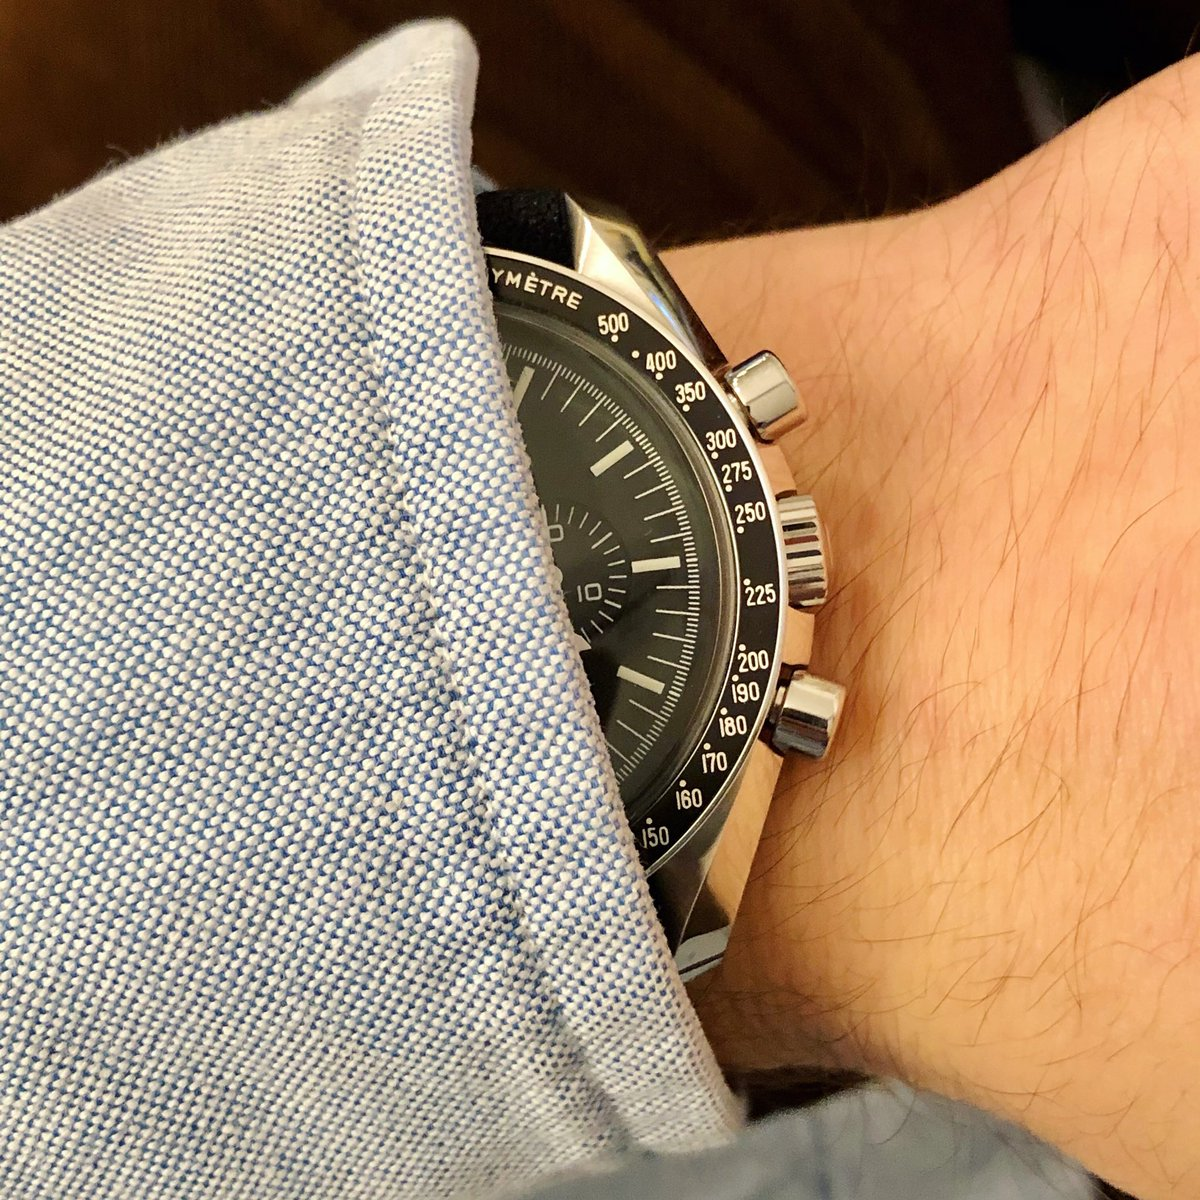 My new Omega in! This time it's not a vintage project😃 #omega #speedmaster #watchcollector #watchlover #wristwatch #wristshot #wristcandy #wristgame #lifestyle #seenthroughwrist #watchaddict